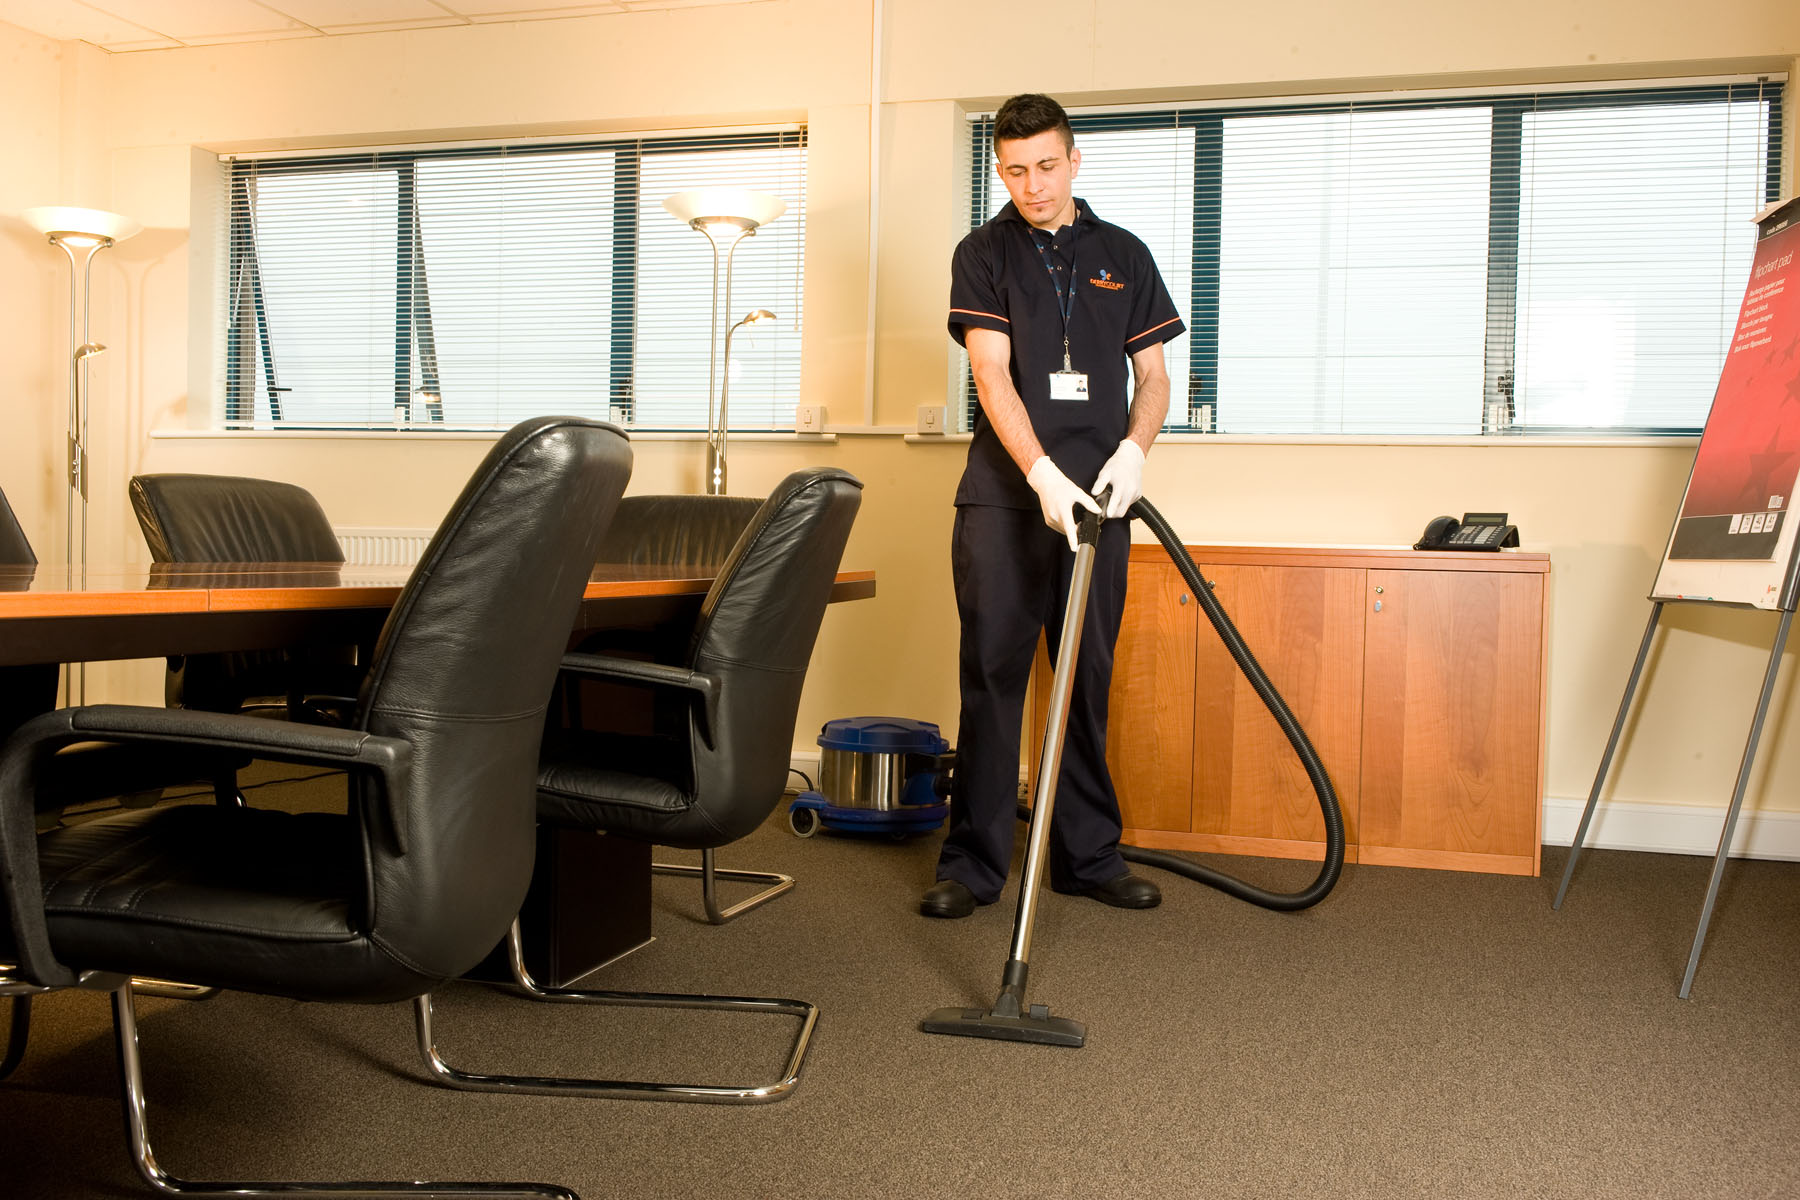 A Staff Member Vacuum Cleaning in the Office